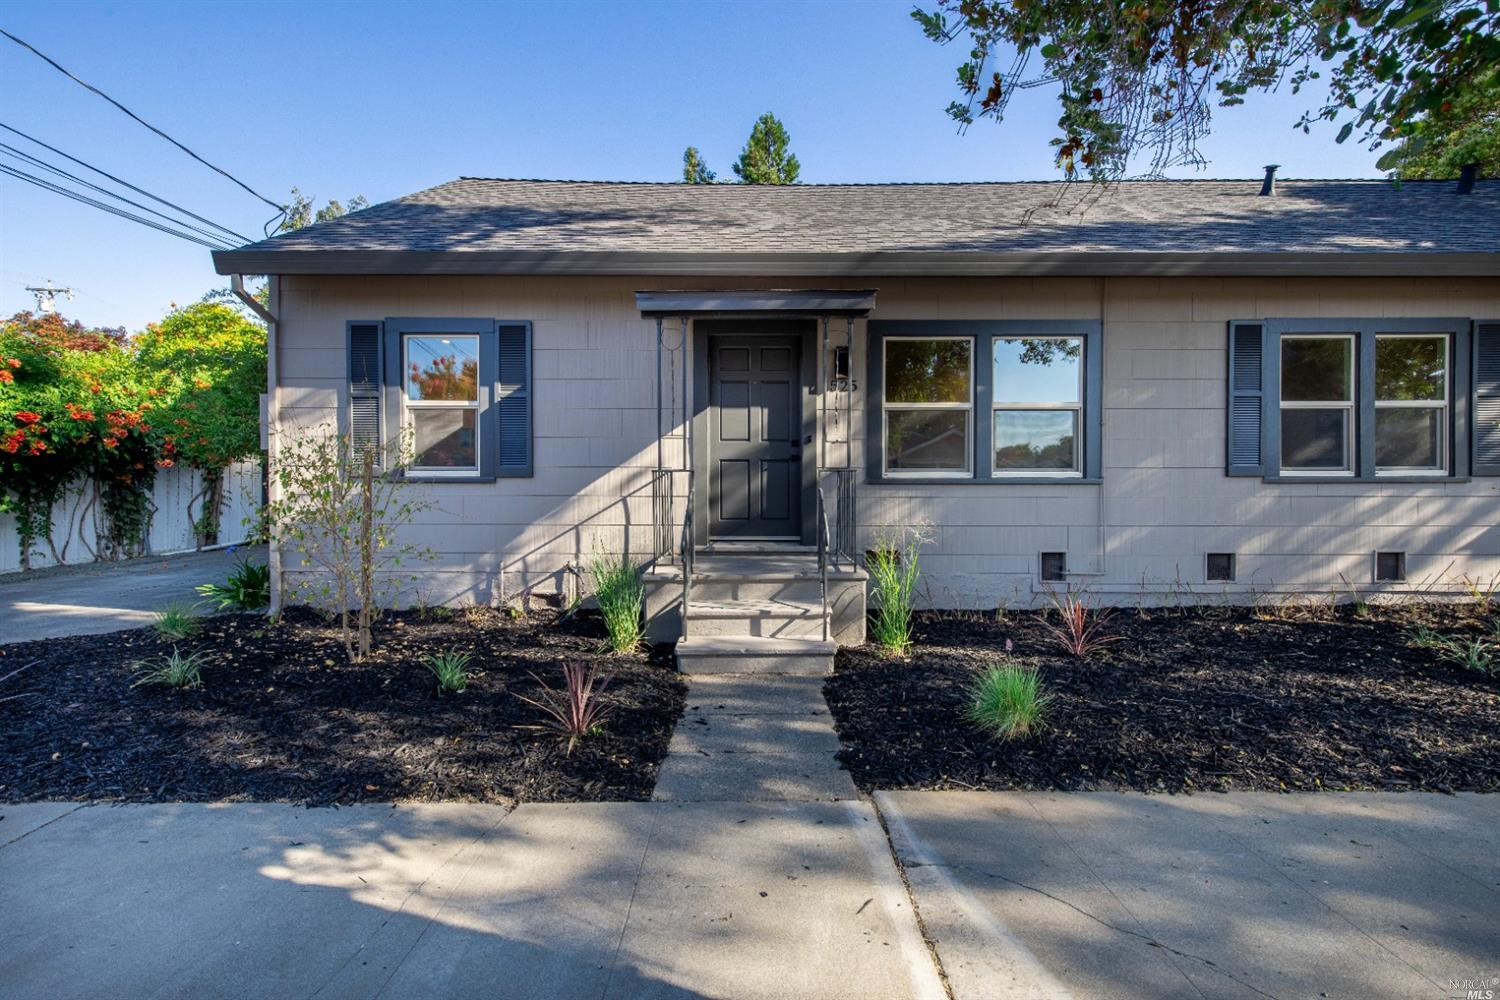 Napa living at its finest!  This beautifully renovated two bedroom, two bathroom duplex is just minutes from Downtown Napa.  All new appliances including washer, dryer, refrigerator, dishwasher, gas range and microwave. Large bedroom and full bath downstairs, spacious upstairs master suite, refinished hardwood floors, beautifully updated kitchen with quartz countertops, air conditioning, single car garage and landscaped backyard.